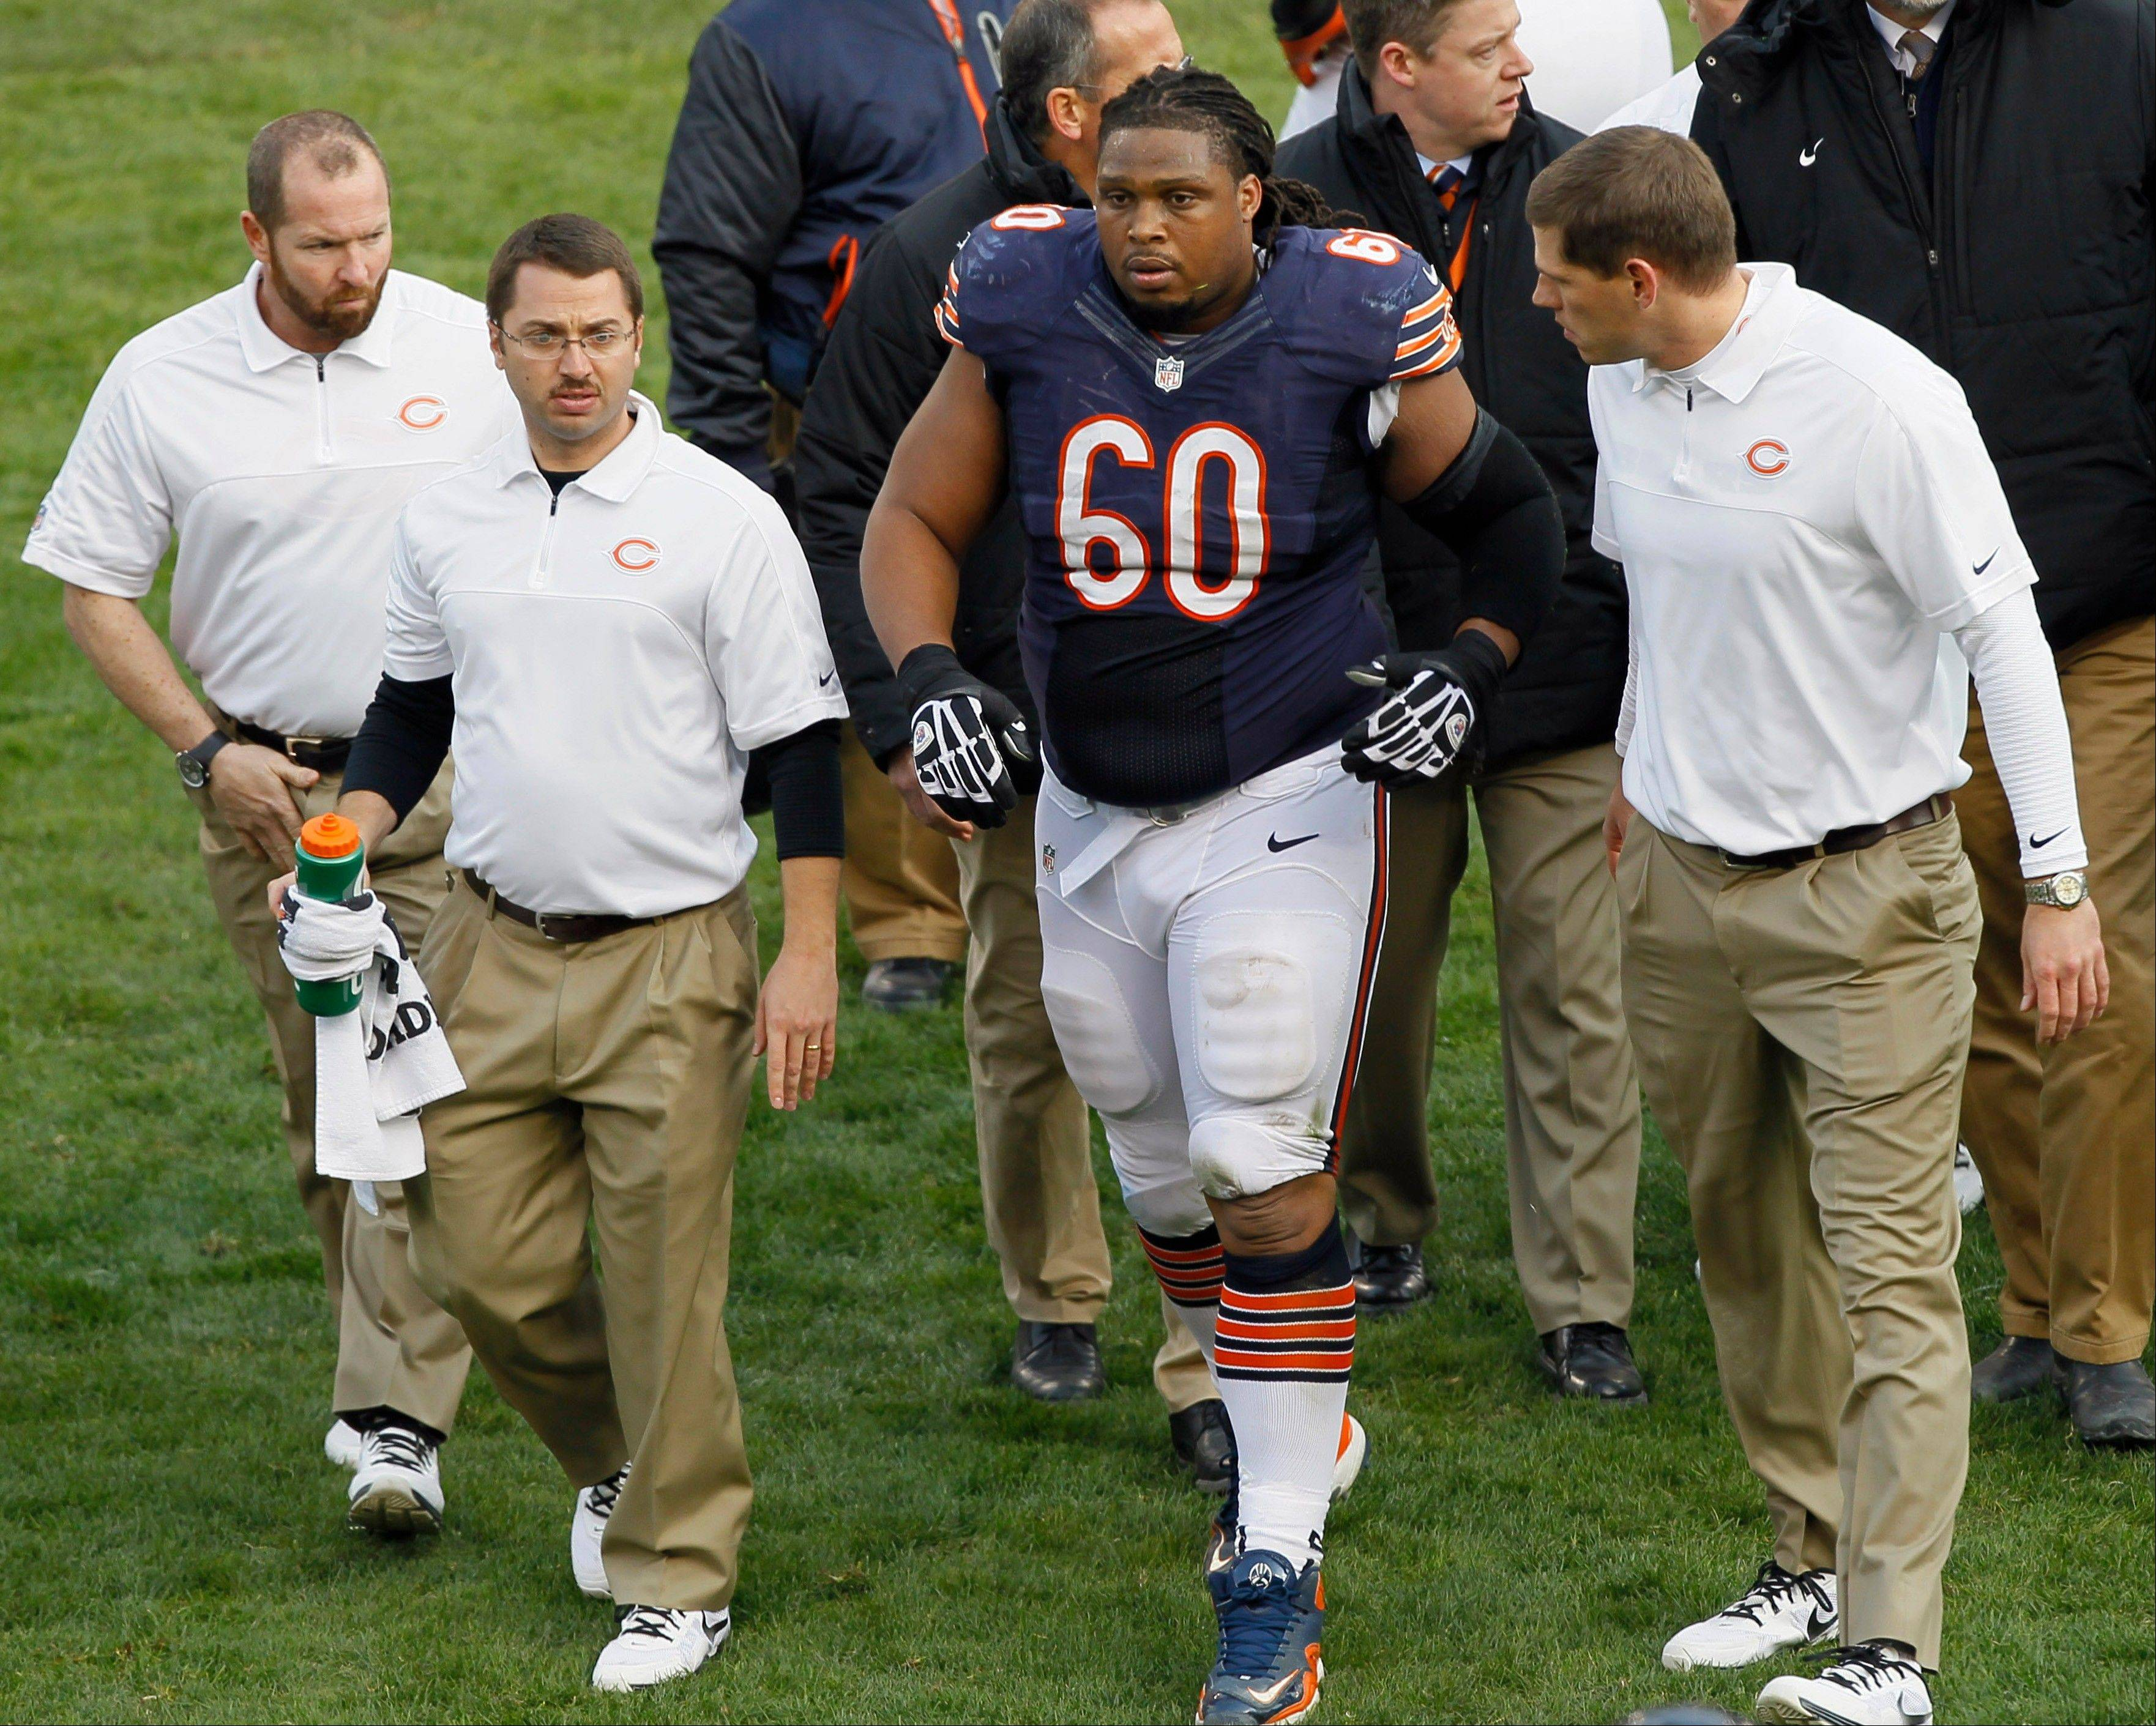 Bears guard Lance Louis (60) is helped from the field by trainers after he injured his knee from a block by Minnesota�s Jared Allen. Louis is out for the year with a torn ACL, and Allen is expected to be finded $21,000 for the hit.